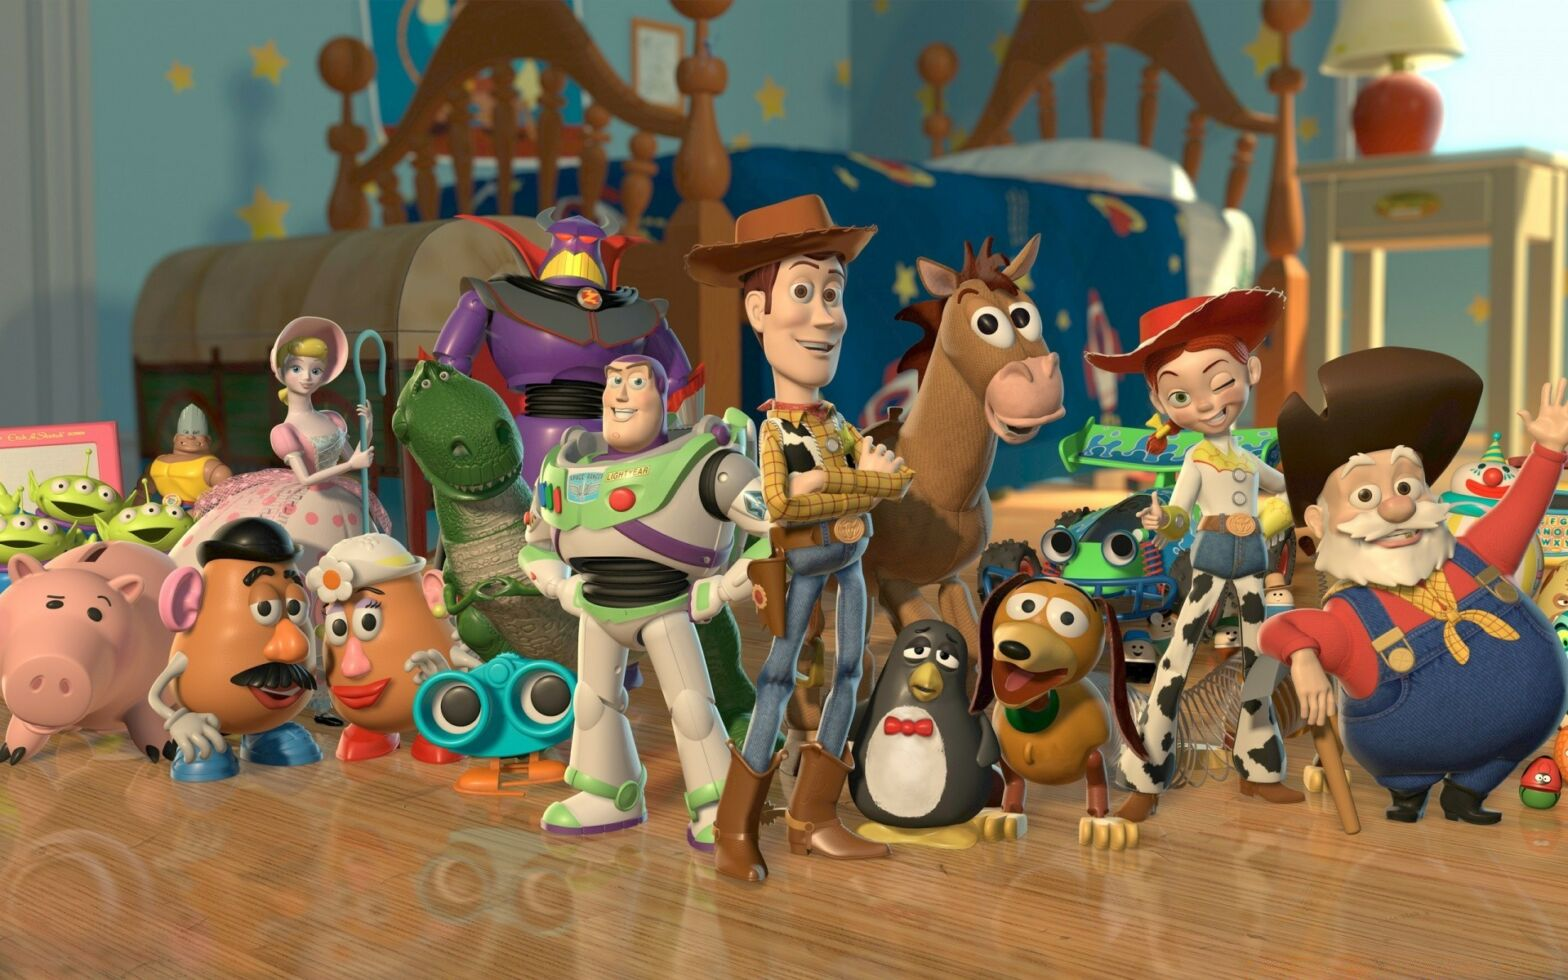 Best Pixar Movies - Featured Image